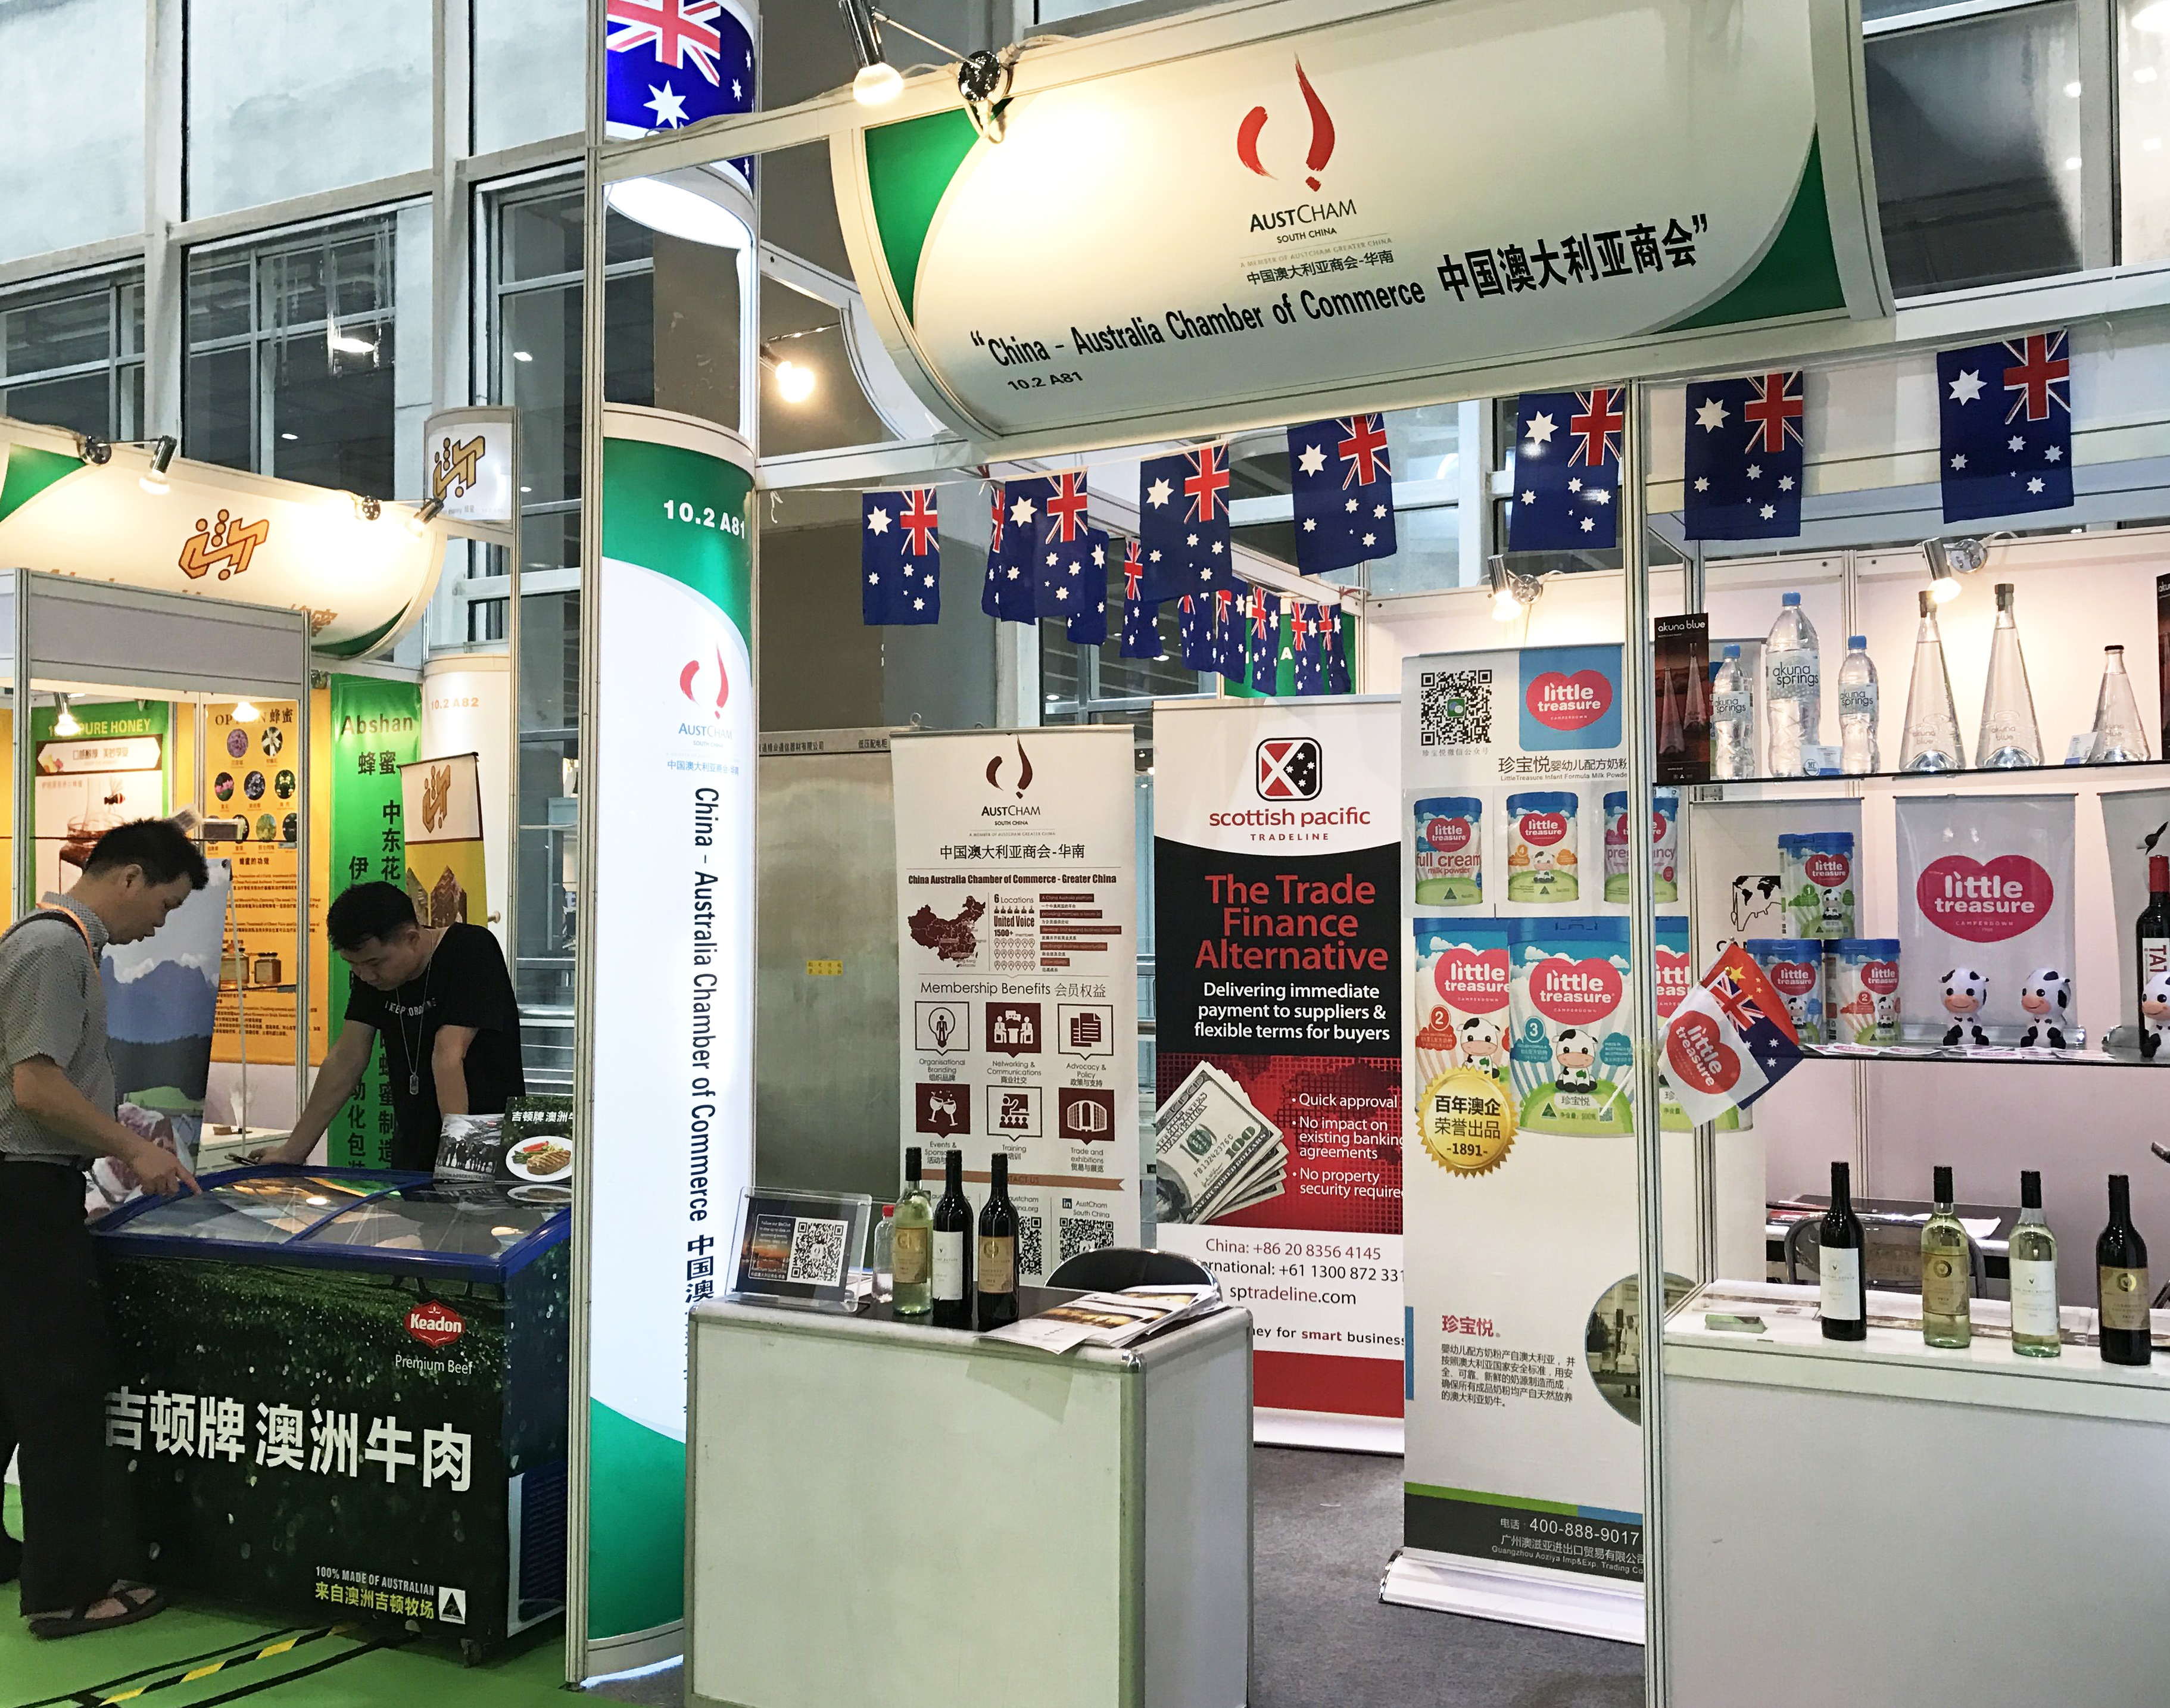 June 16th-18th | AustCham at International Food Exhibition